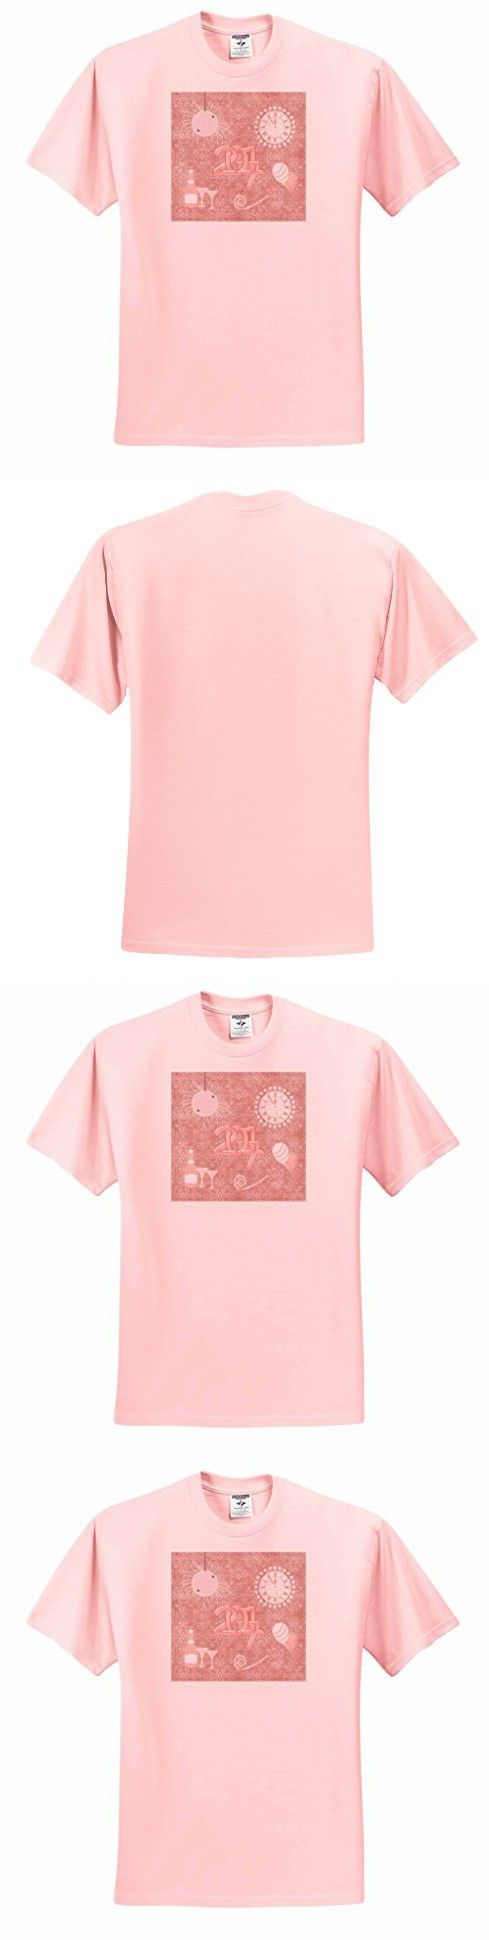 Beverly Turner New Years Design - New Year 2017, Champagne, Glasses, Clock, Balloon, Whistle, pink - T-Shirts - Adult Light-Pink-T-Shirt 2XL (ts_244245_38)